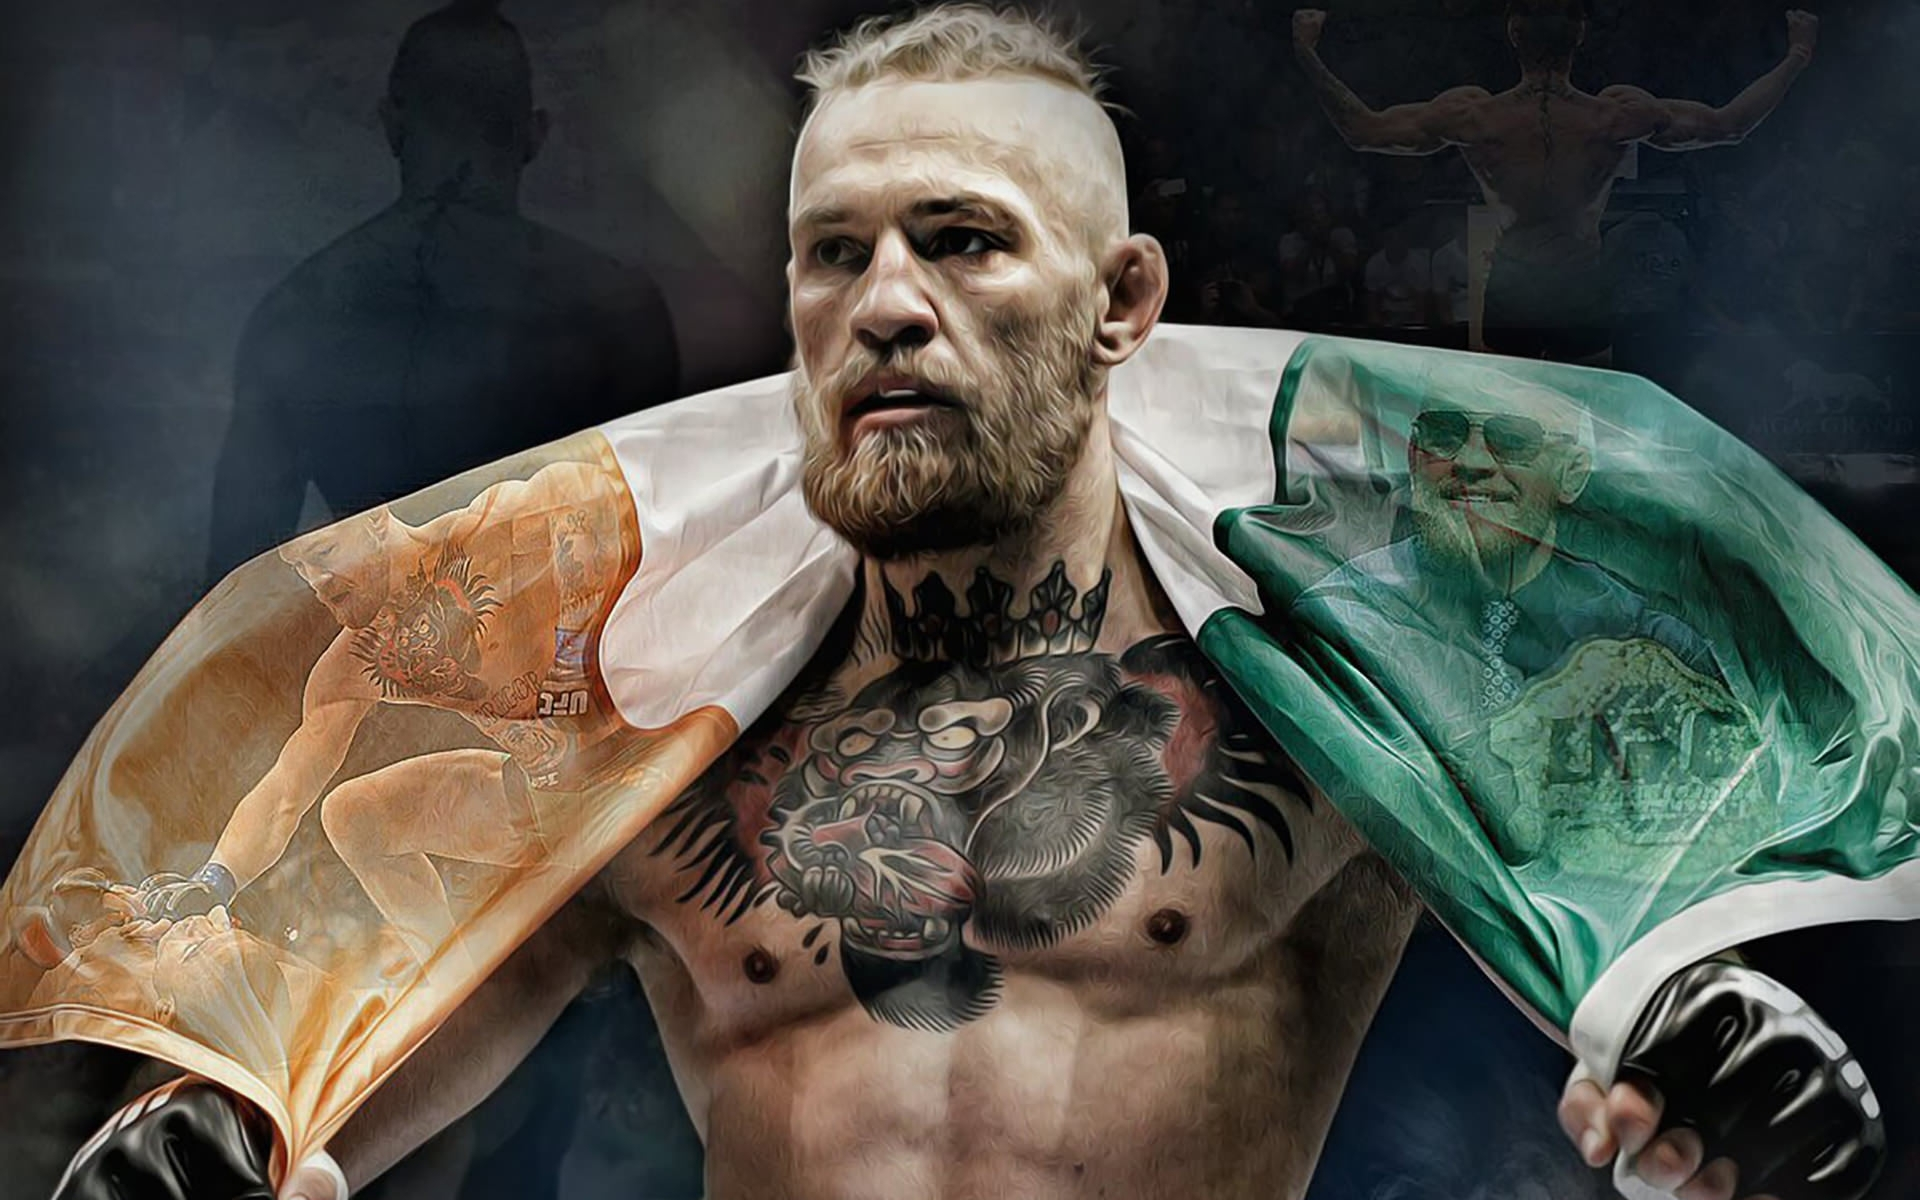 ufc conor mcgregor wallpaper hd